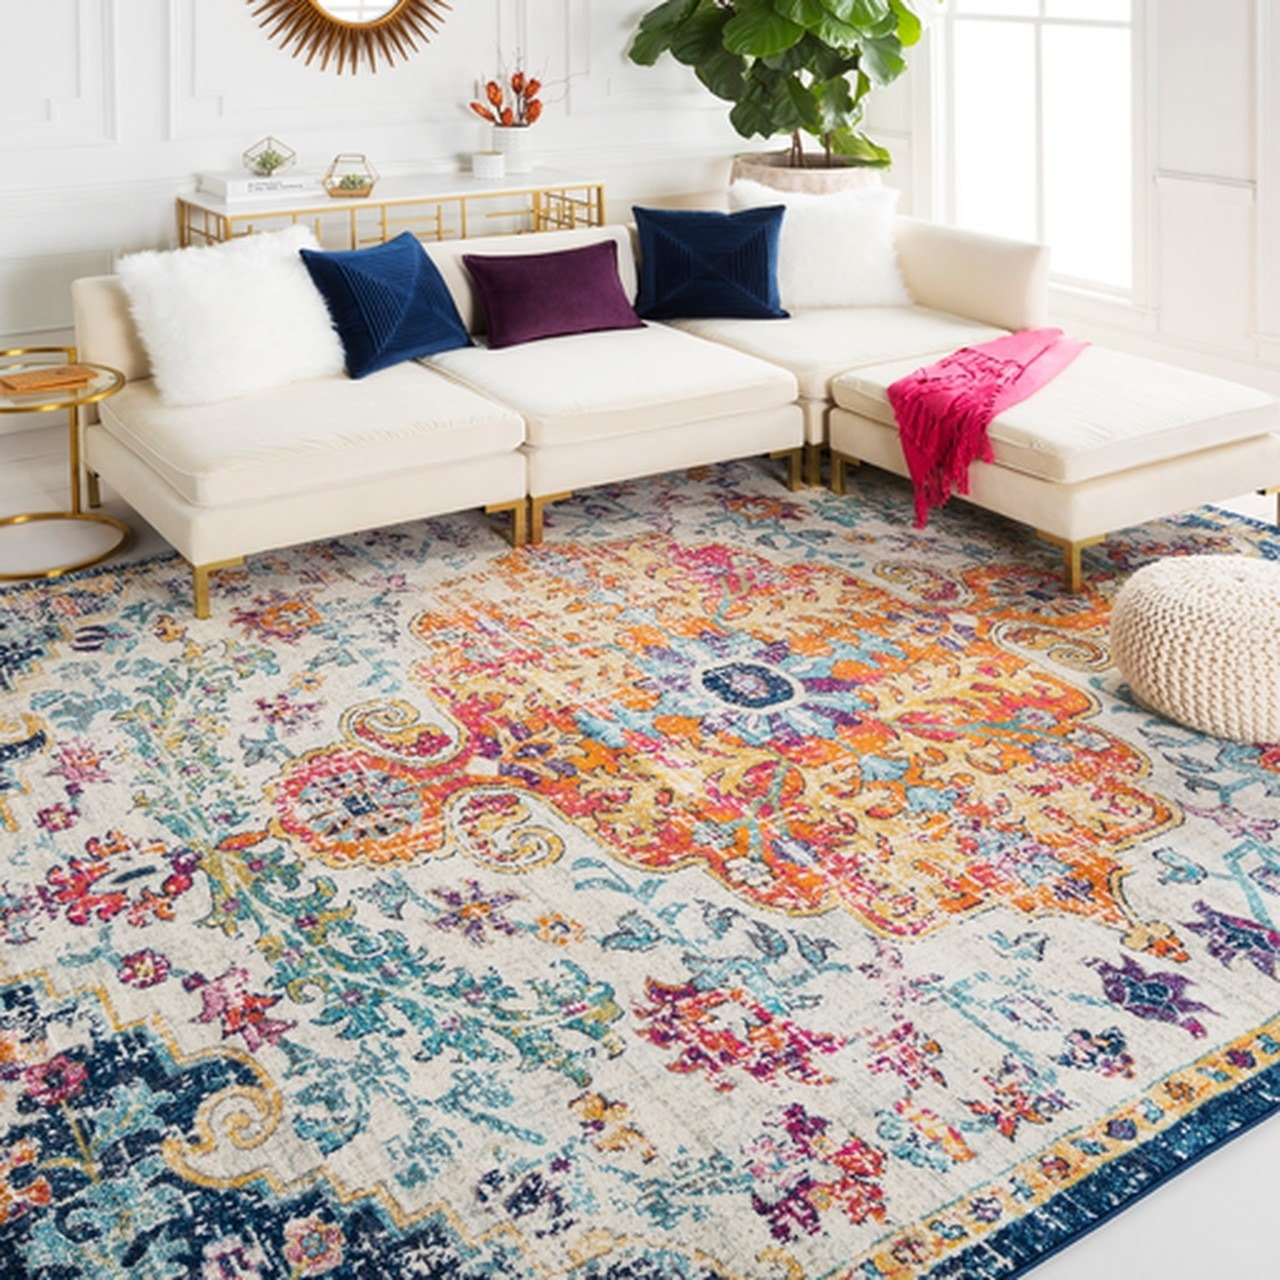 large rug with blue, teal, orange, and yellow floral design